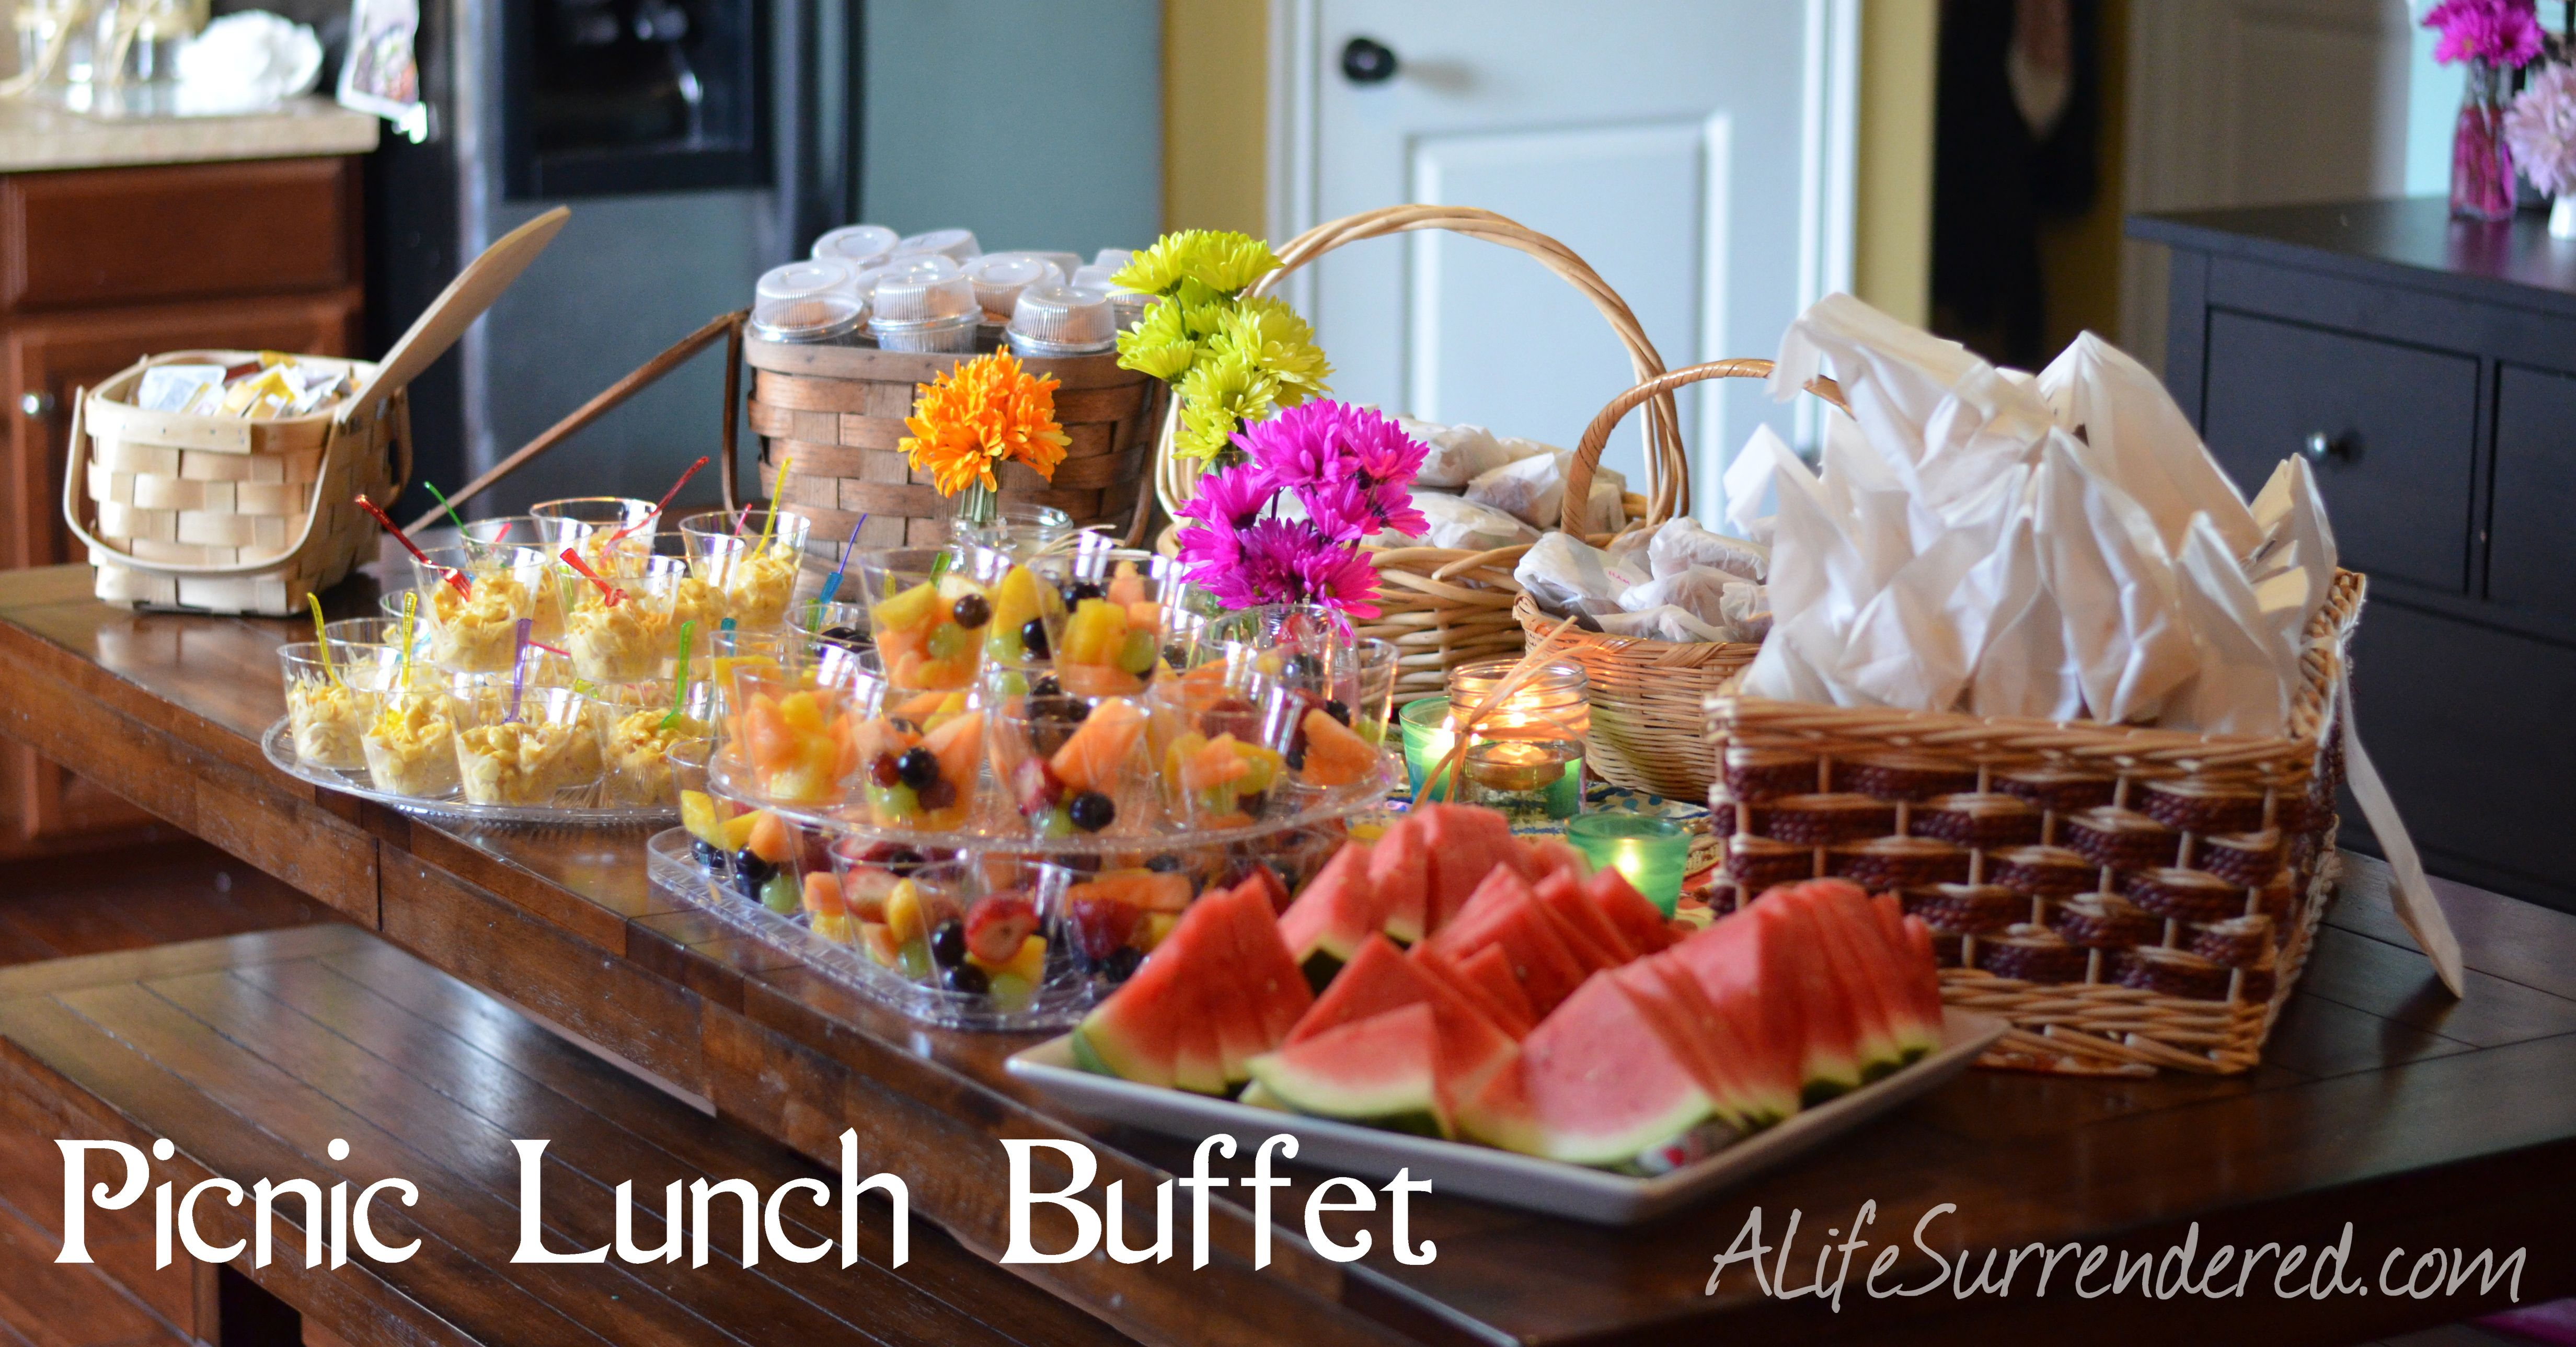 Awesome Picnic Lunch Buffet For An Outdoor Party On The Menu Chick Interior Design Ideas Clesiryabchikinfo